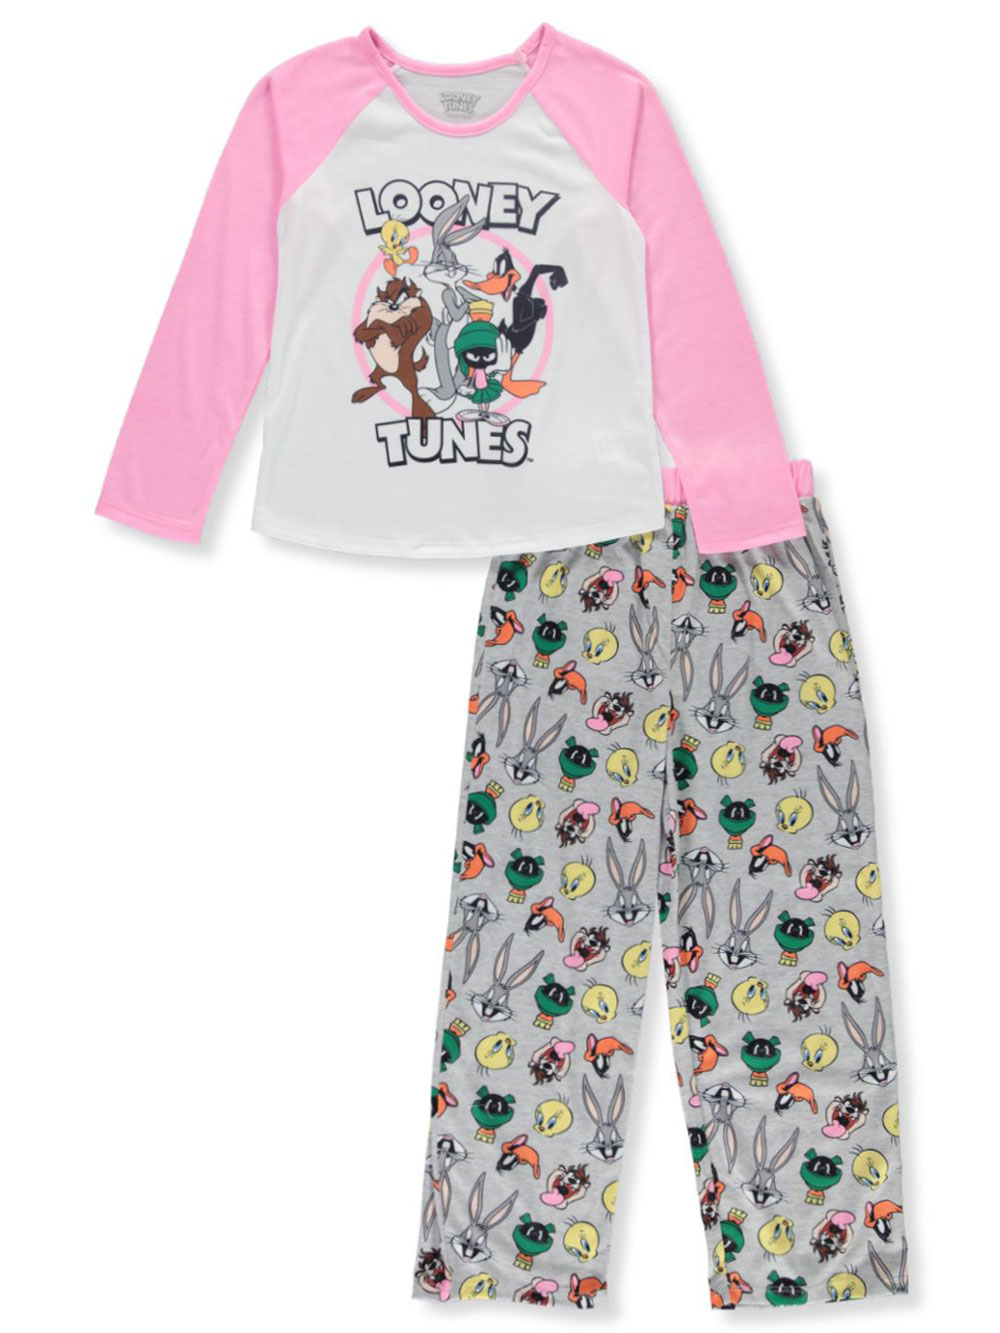 Looney Tunes Pajamas